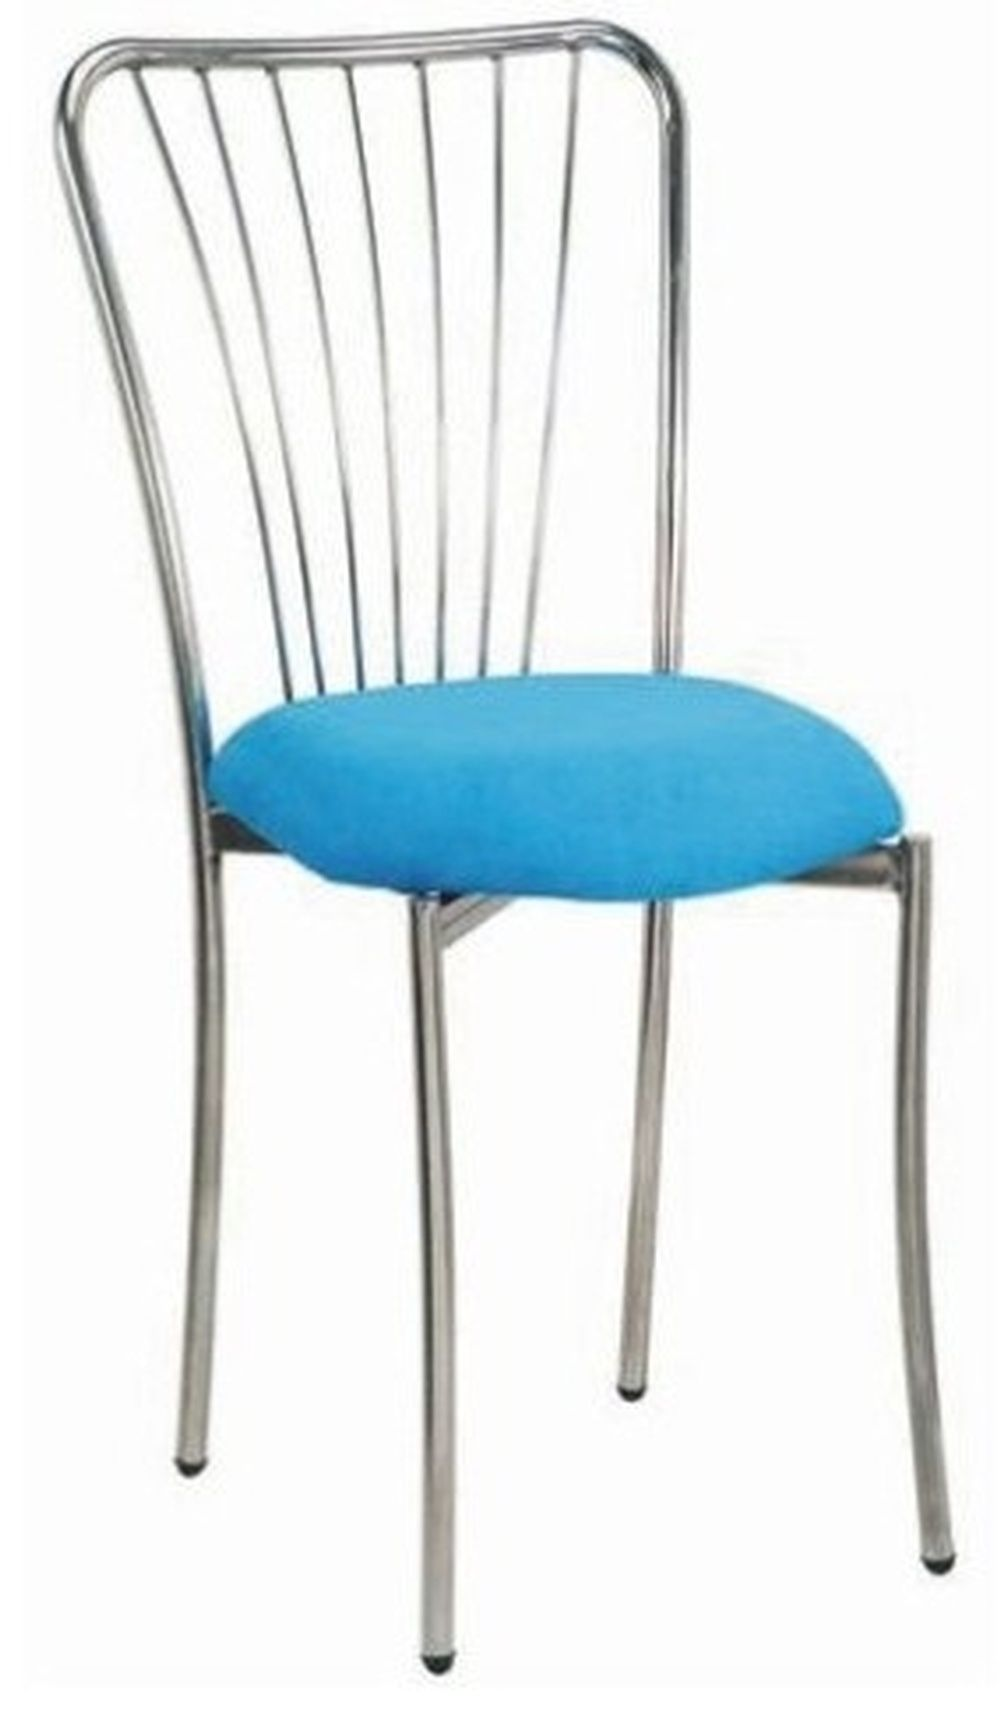 Cafeteria Chairs Cafeteria Furniture Cafeteria Chair Adiko Durable Cafeteria